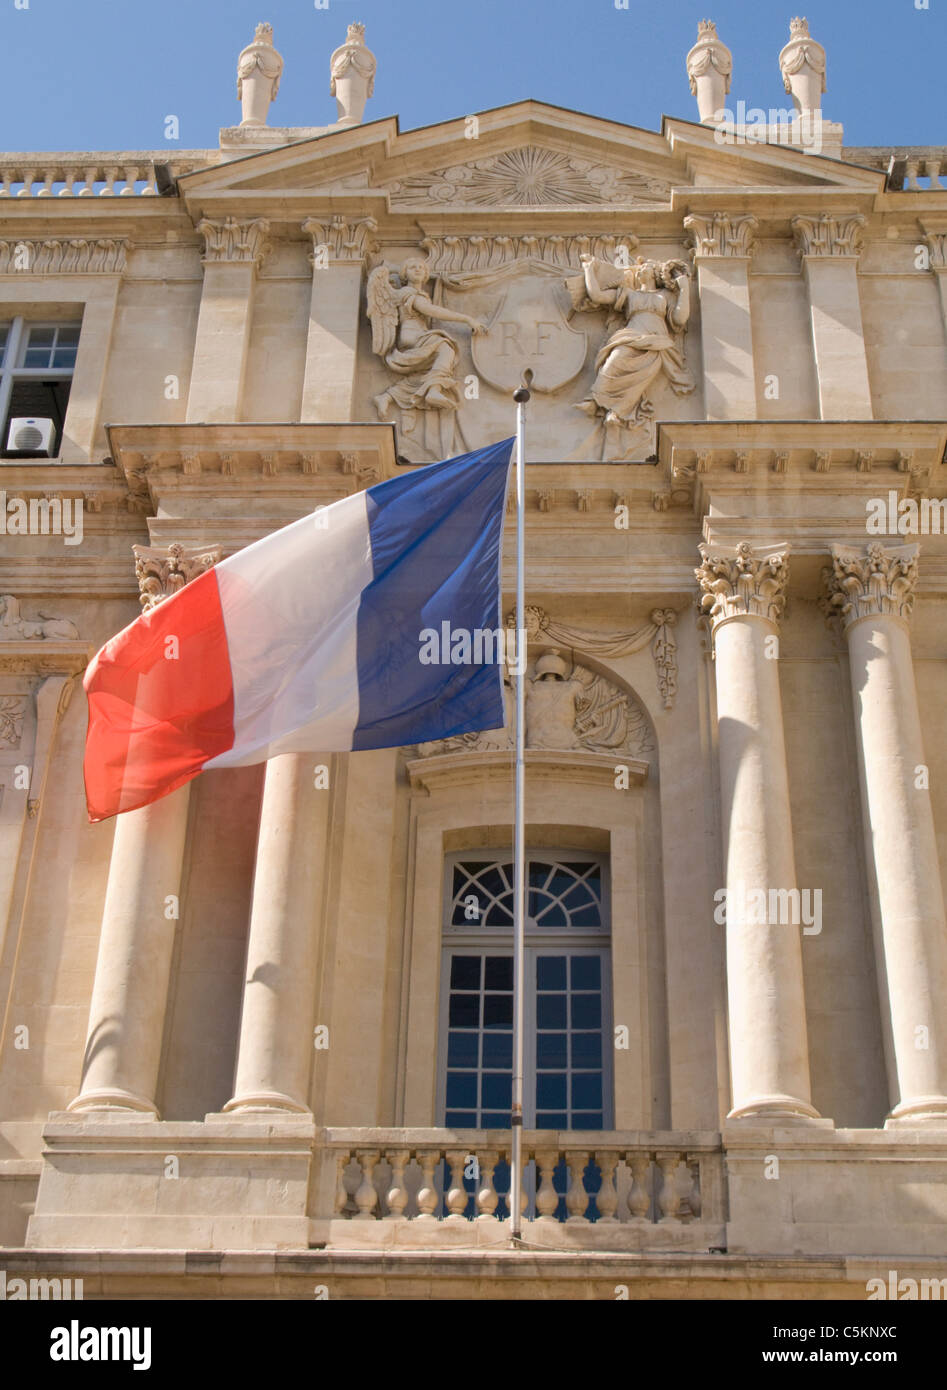 Detail of façade of the Marie (Town Hall) of Arles, France, with French flag and national crest with - Stock Image